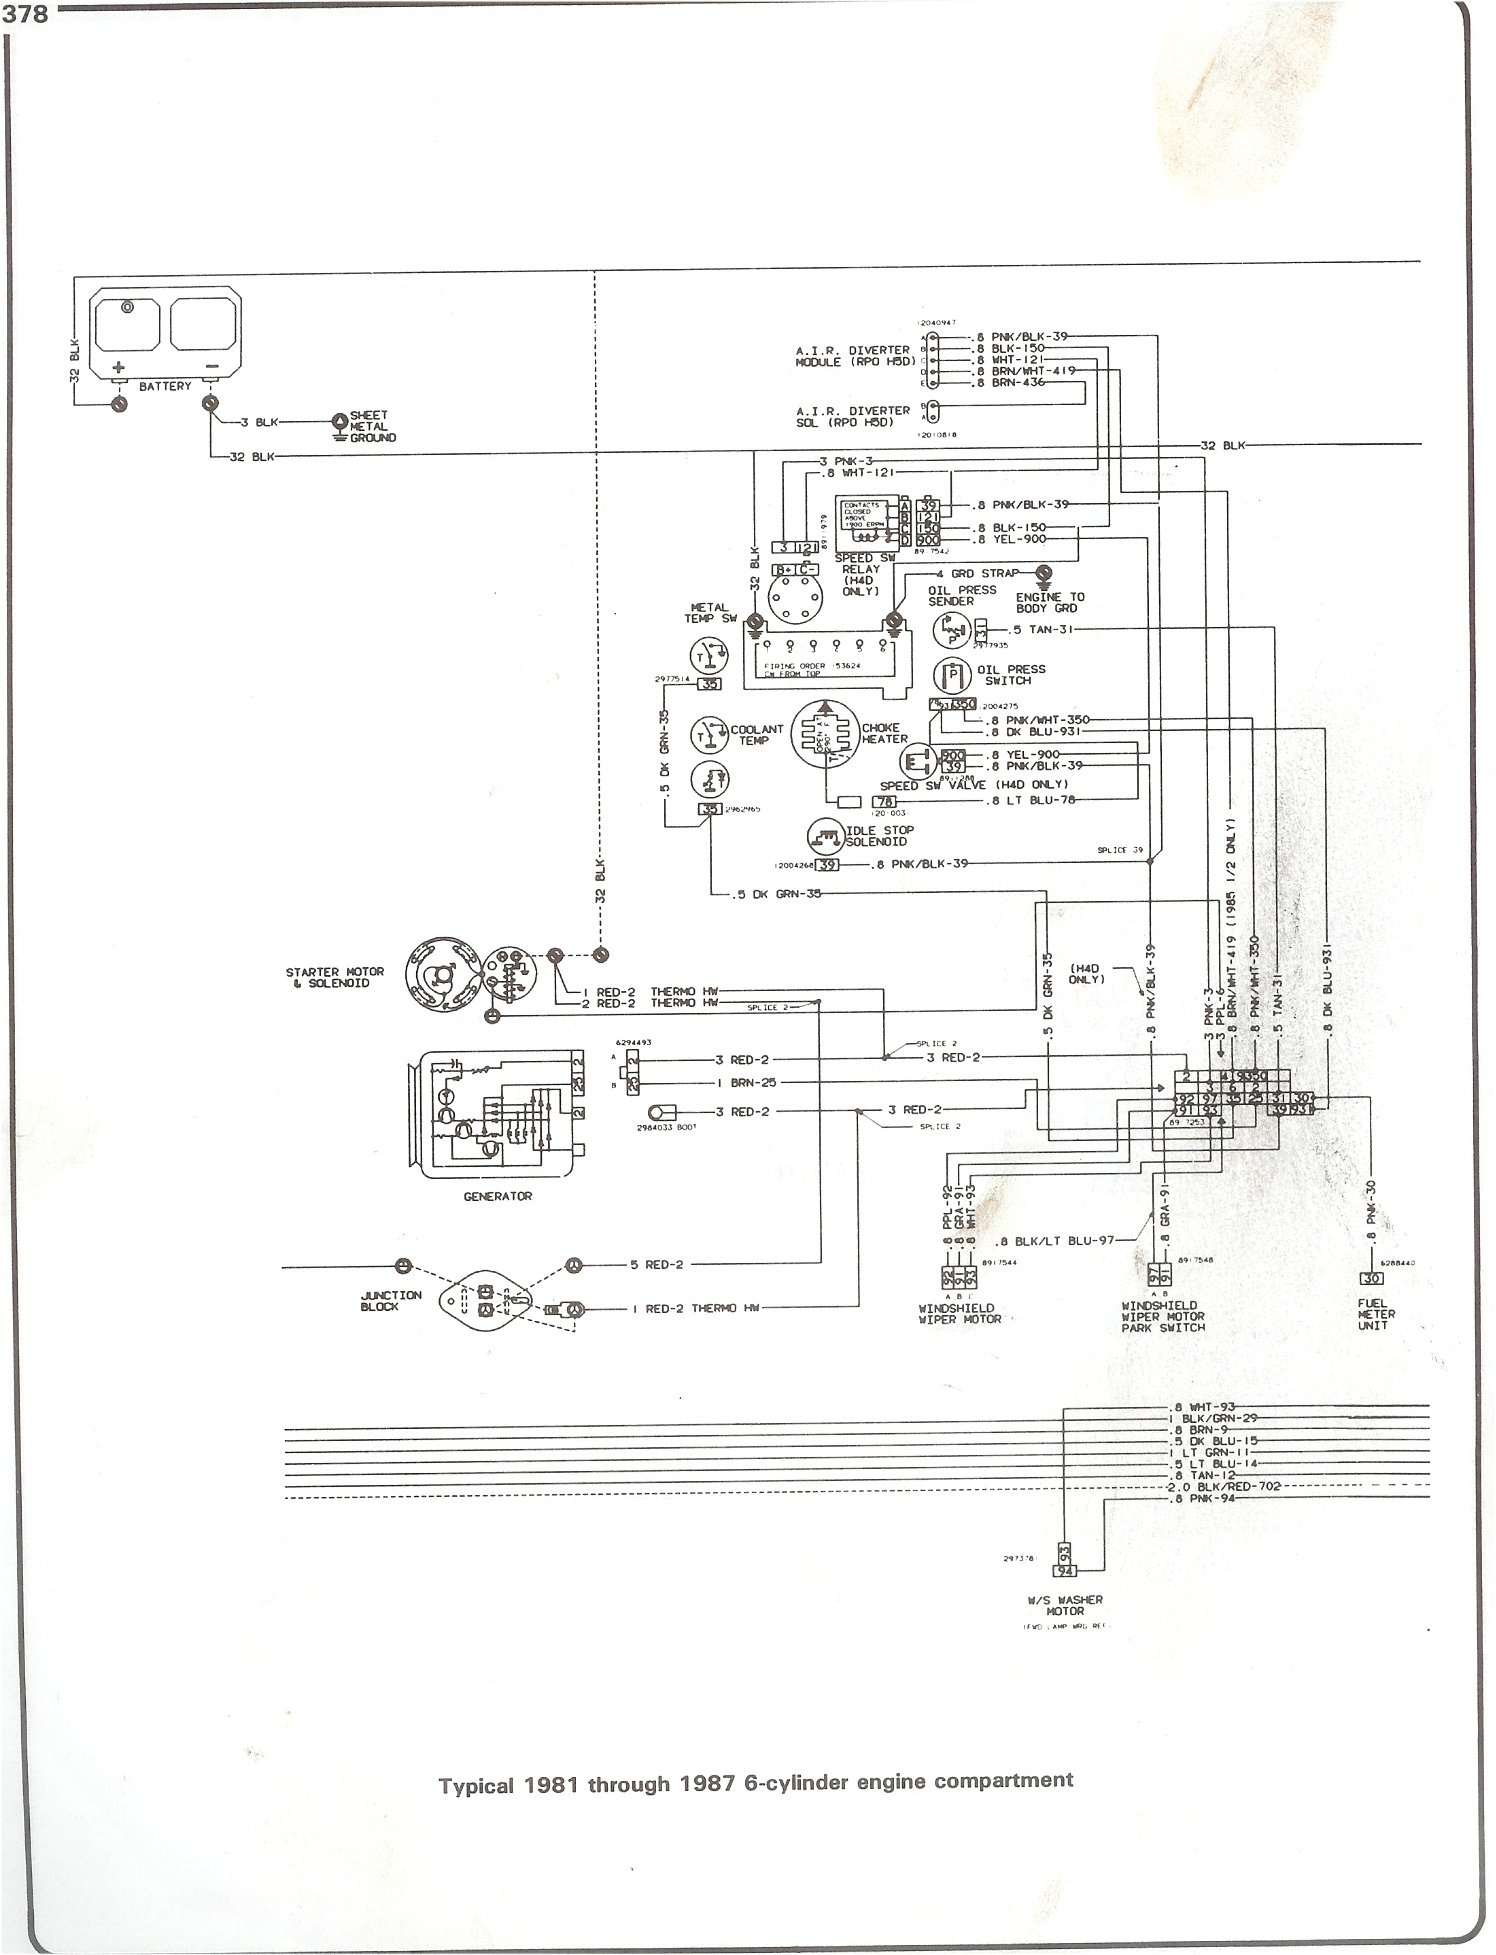 85 Chevy C10 Engine Wiring Starting Know About Diagram For 1985 Truck Complete 73 87 Diagrams Rh Forum 87chevytrucks Com